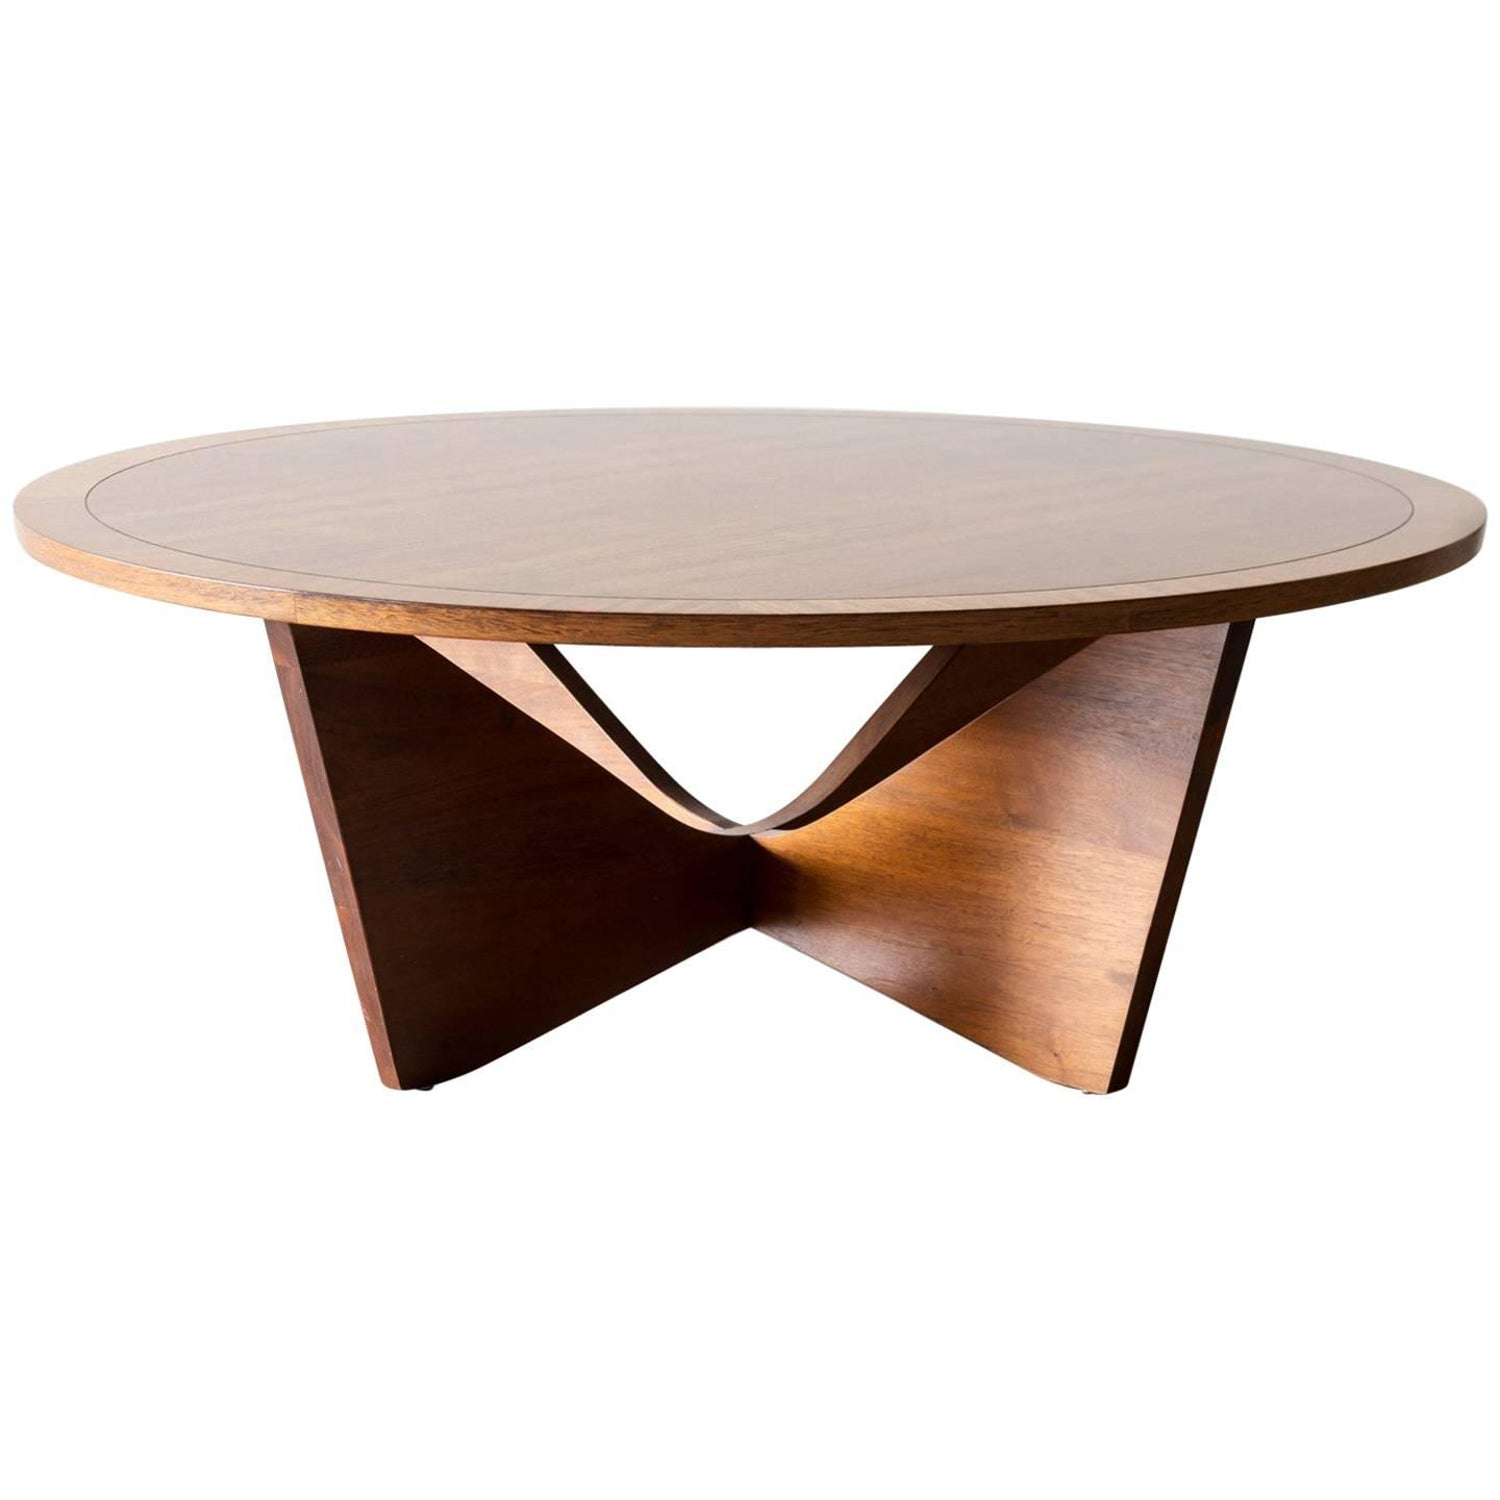 rare george nakashima coffee table in laurel and walnut for